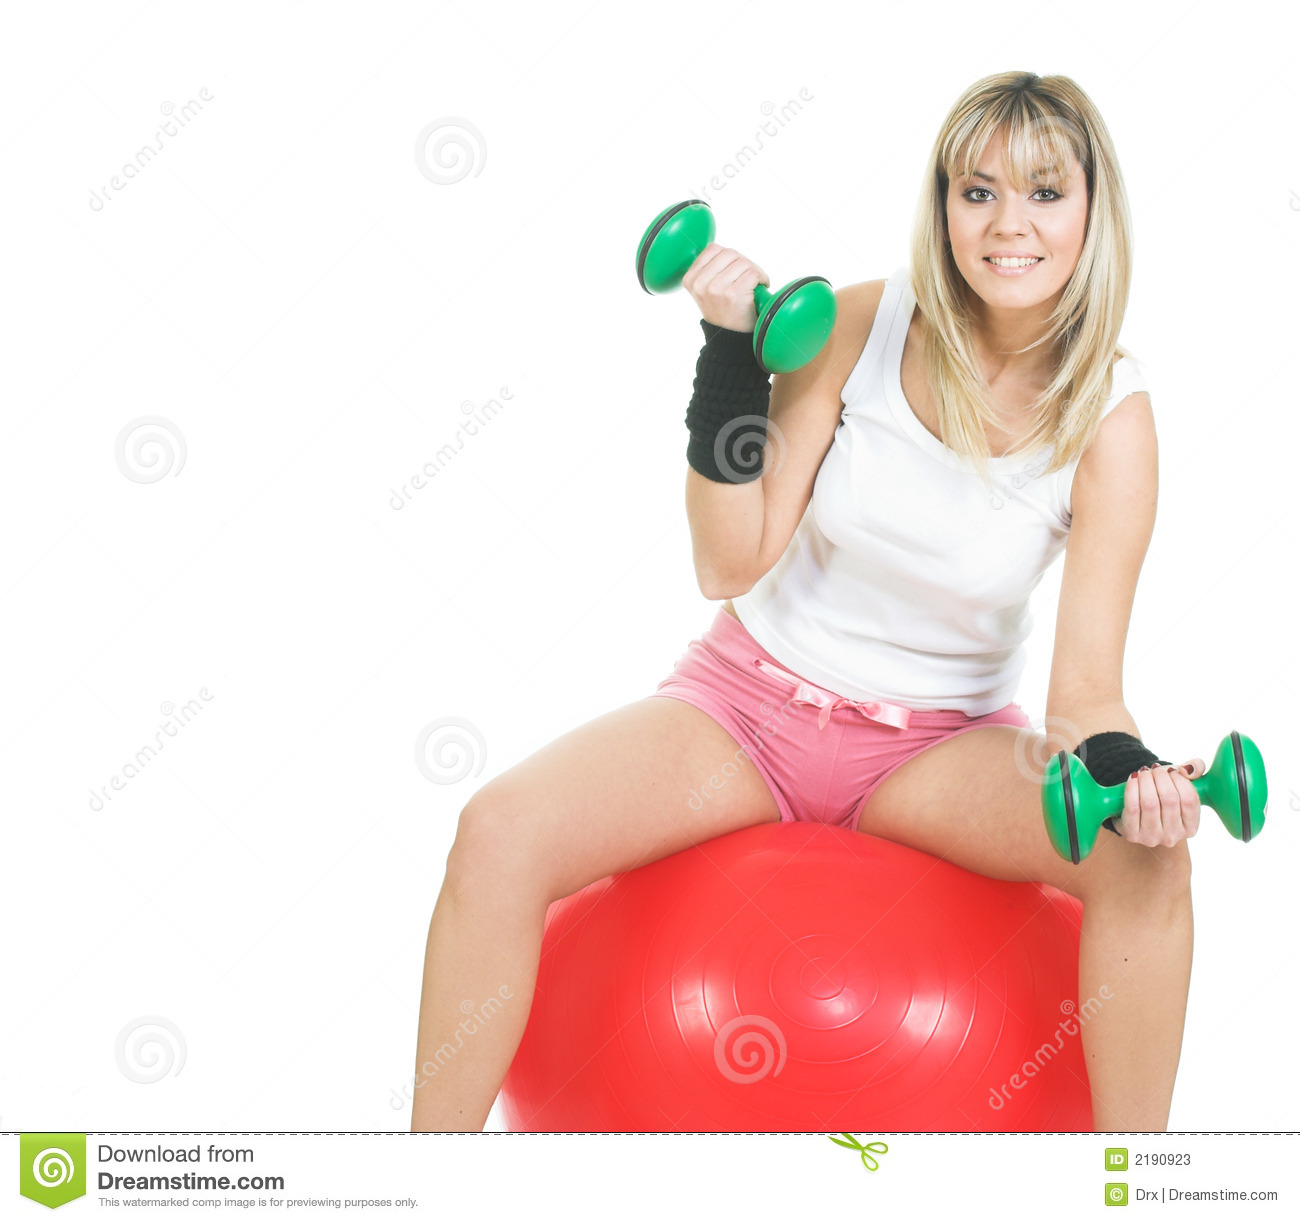 Woman Pilates Chair Exercises Fitness Stock Photo: Pilates Ball Woman Exercise Stock Image